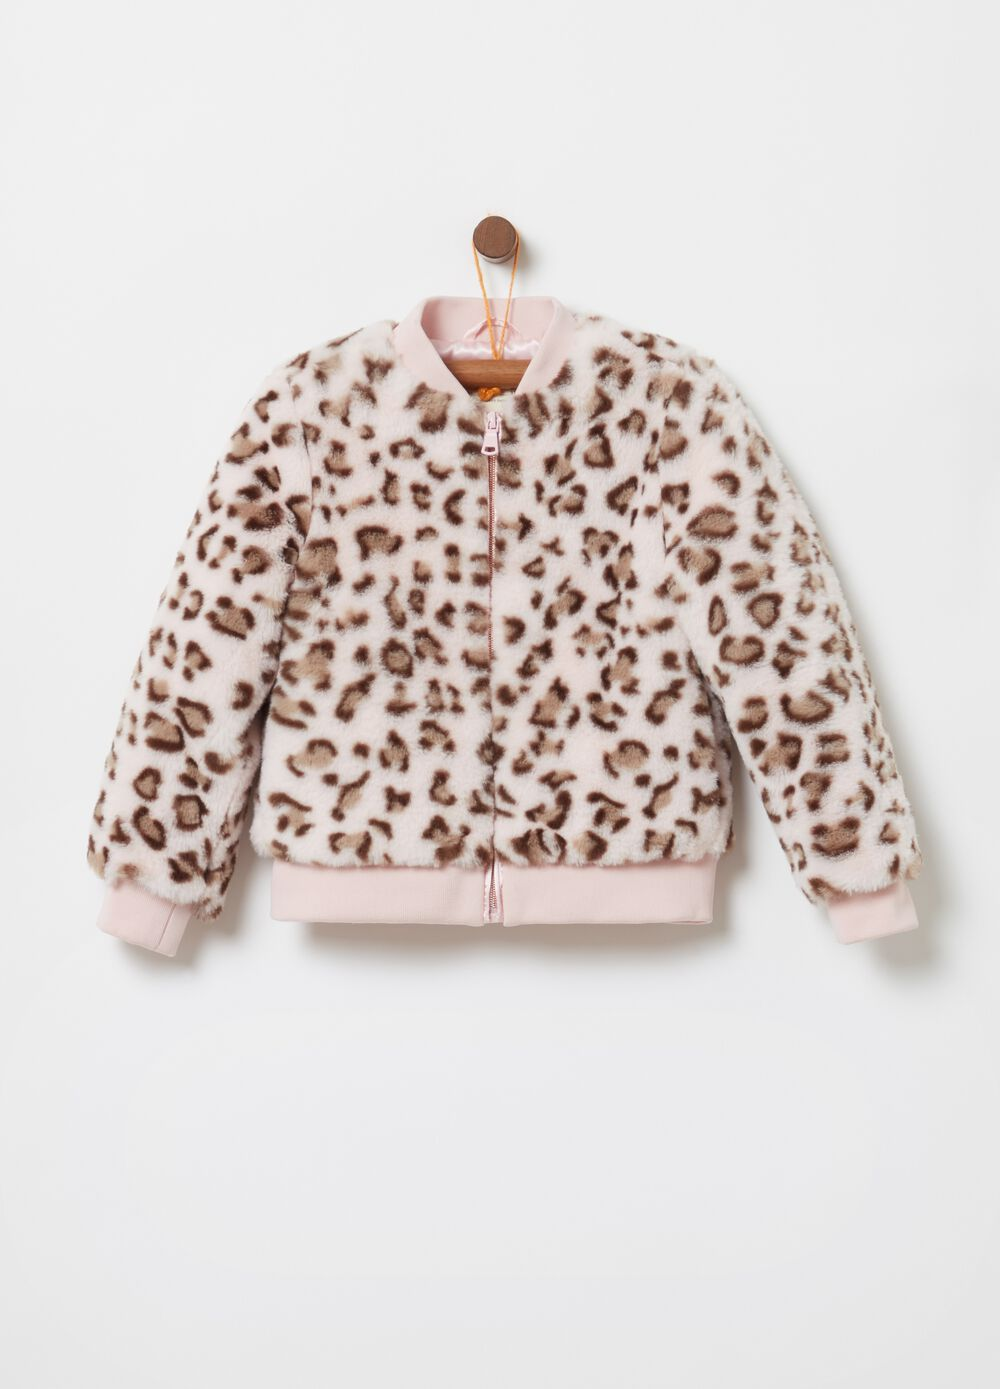 Faux fur jacket with animal print pattern